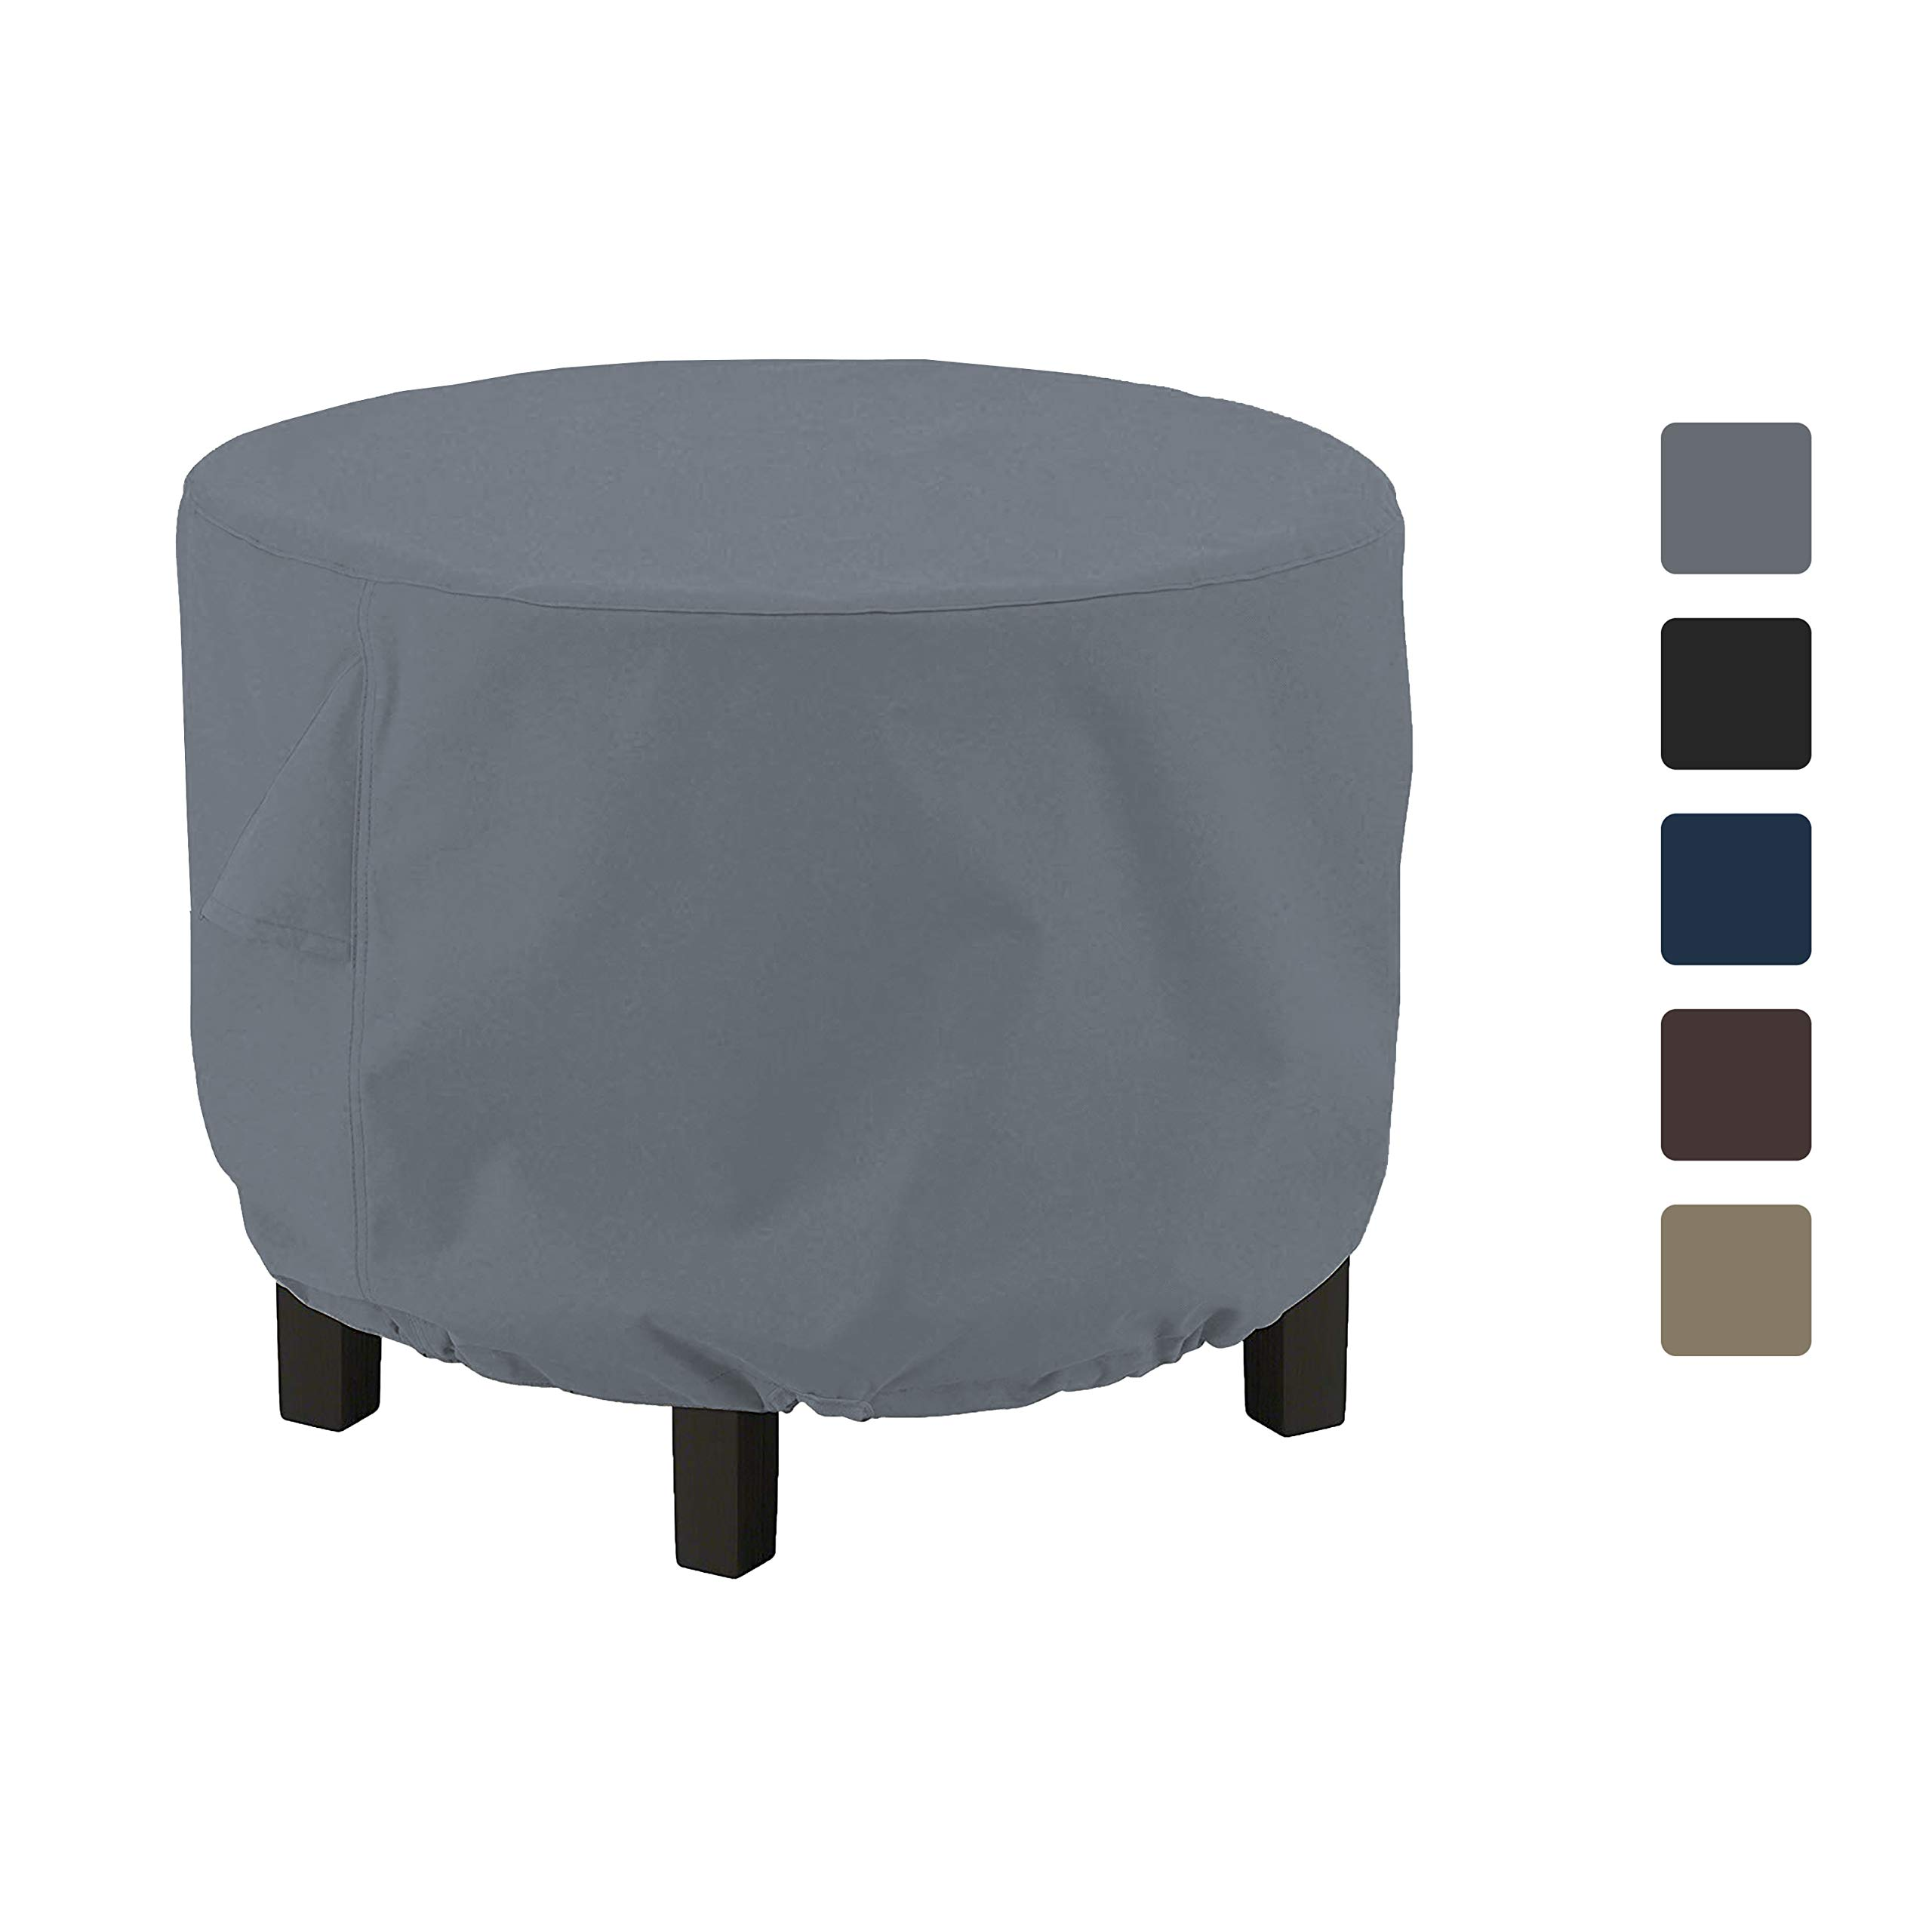 Outdoor Ottoman Cover 12 Oz - Waterproof & Weather Resistant Patio Furniture Covers - Round Ottoman Cover Heavy Duty Fabric with Drawstring for Snug fit (36'' Dia x 24'' H, Grey)